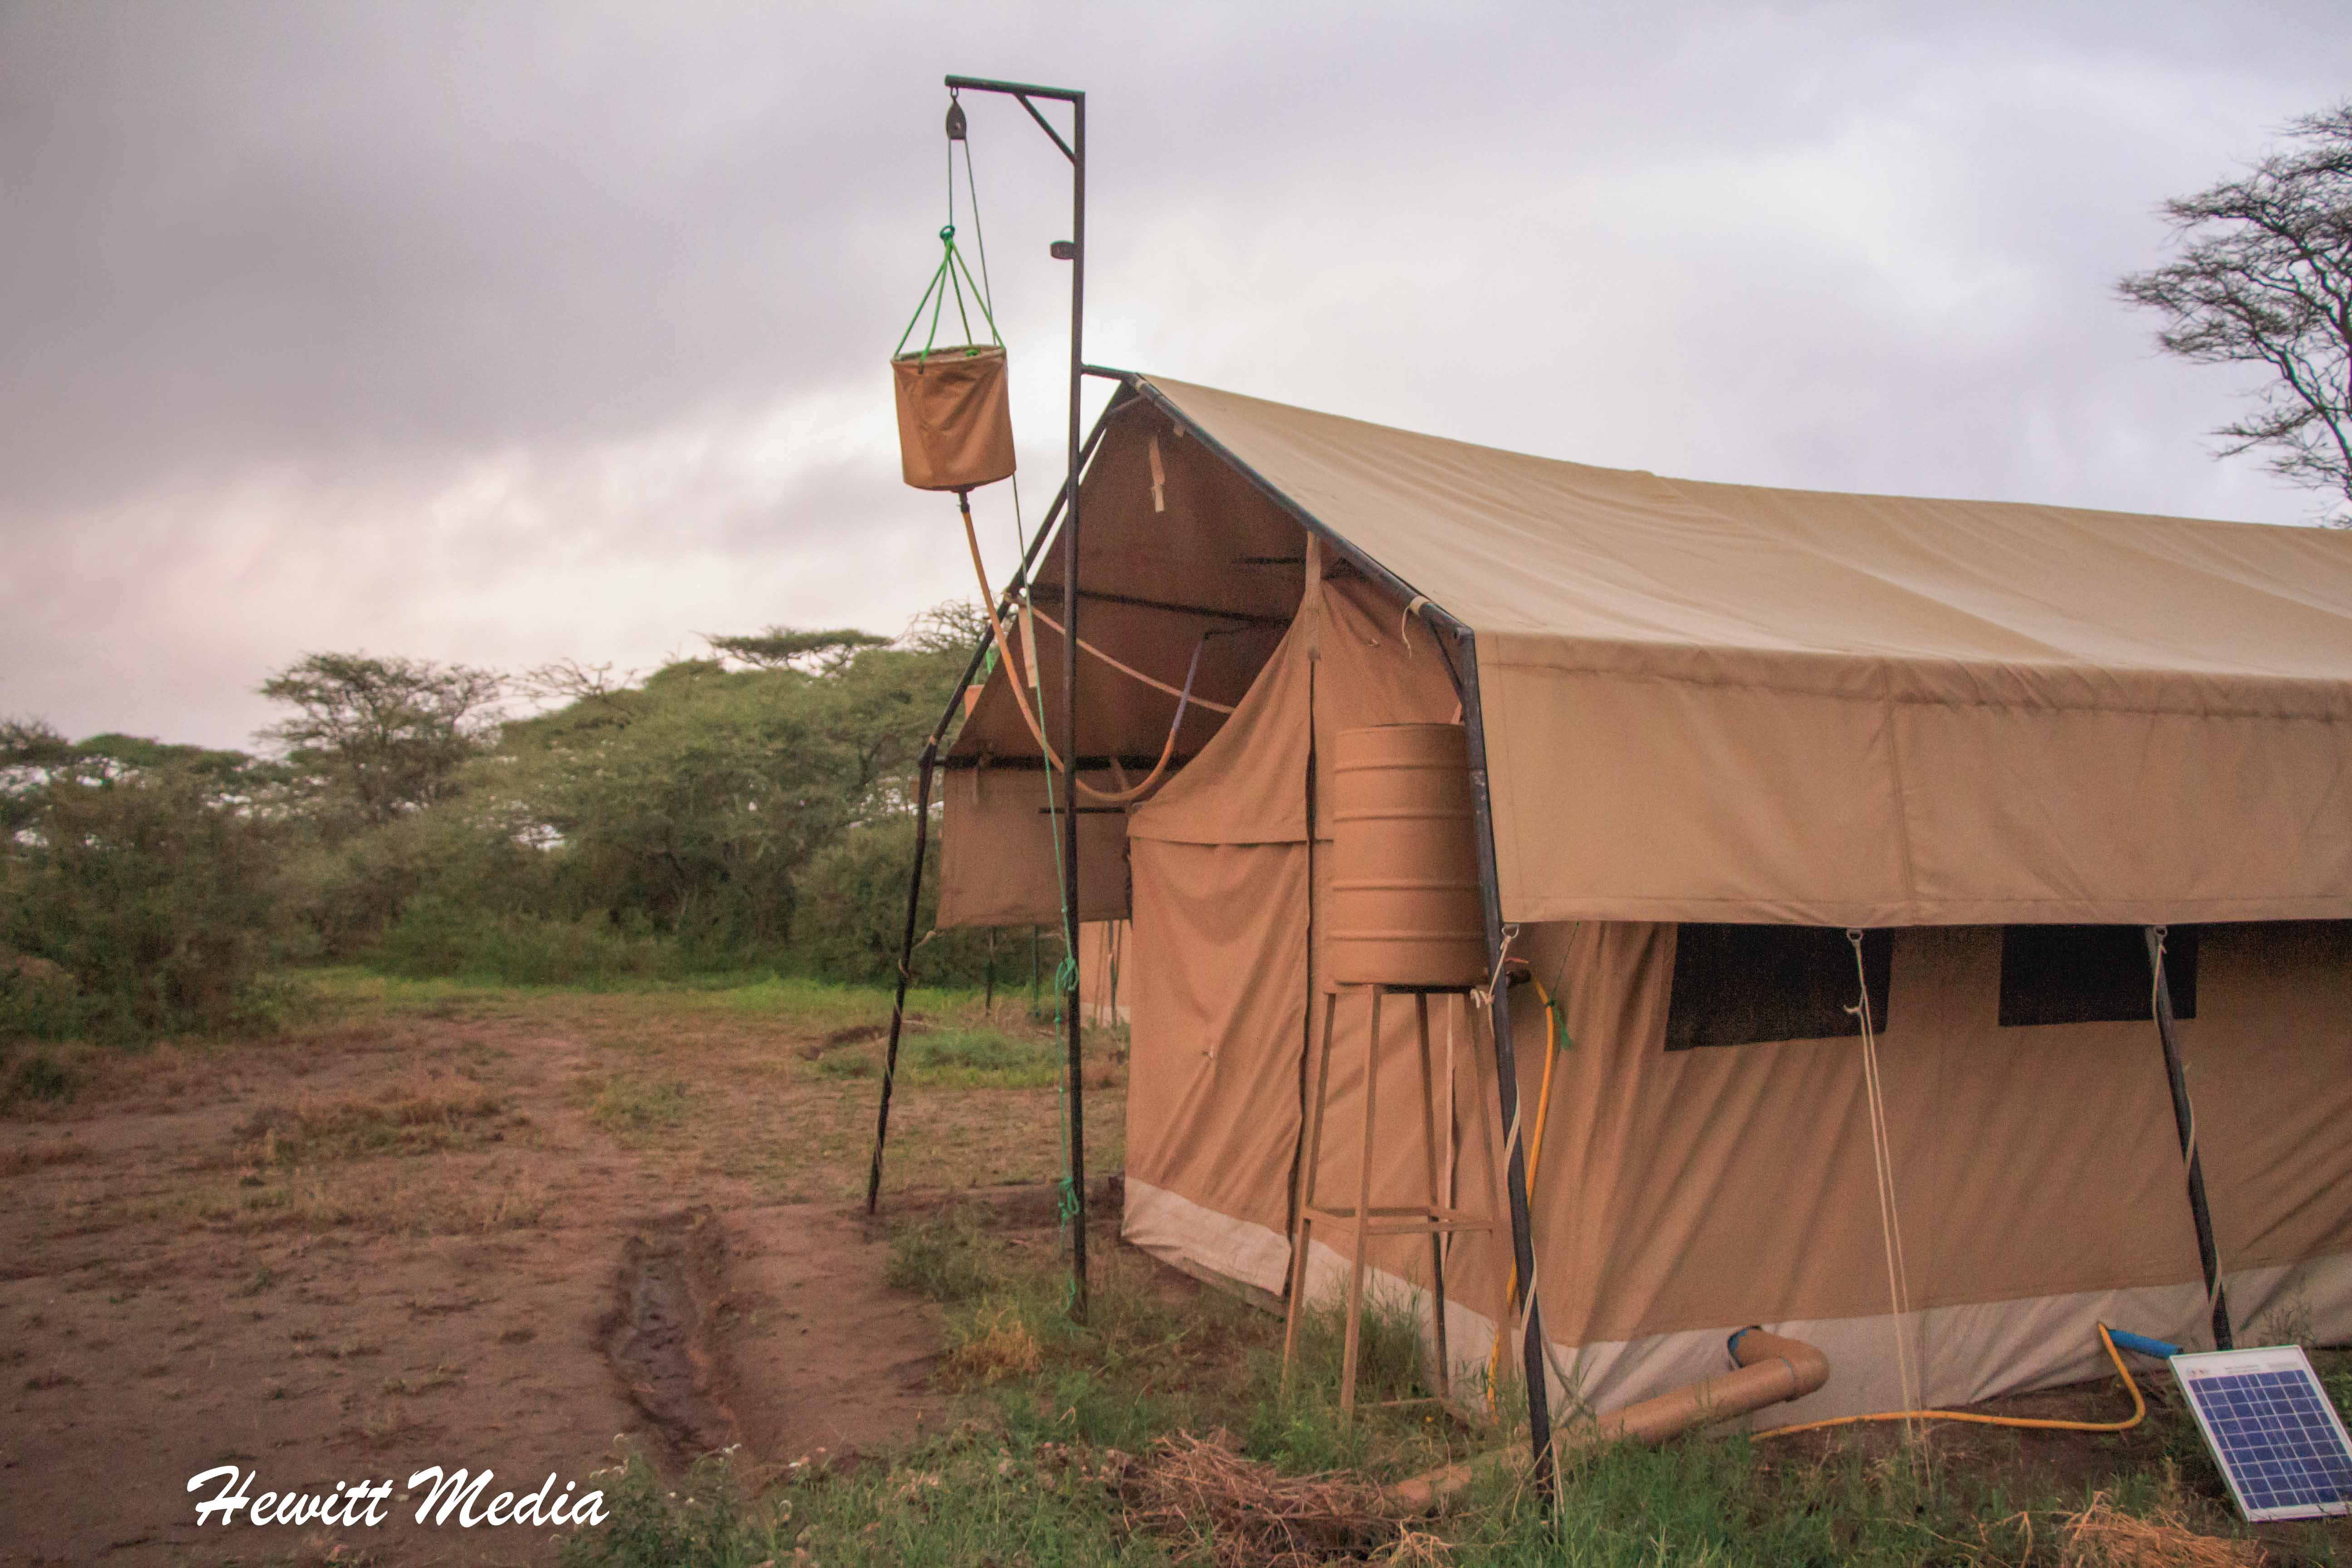 Our tent in the Serengeti National Park